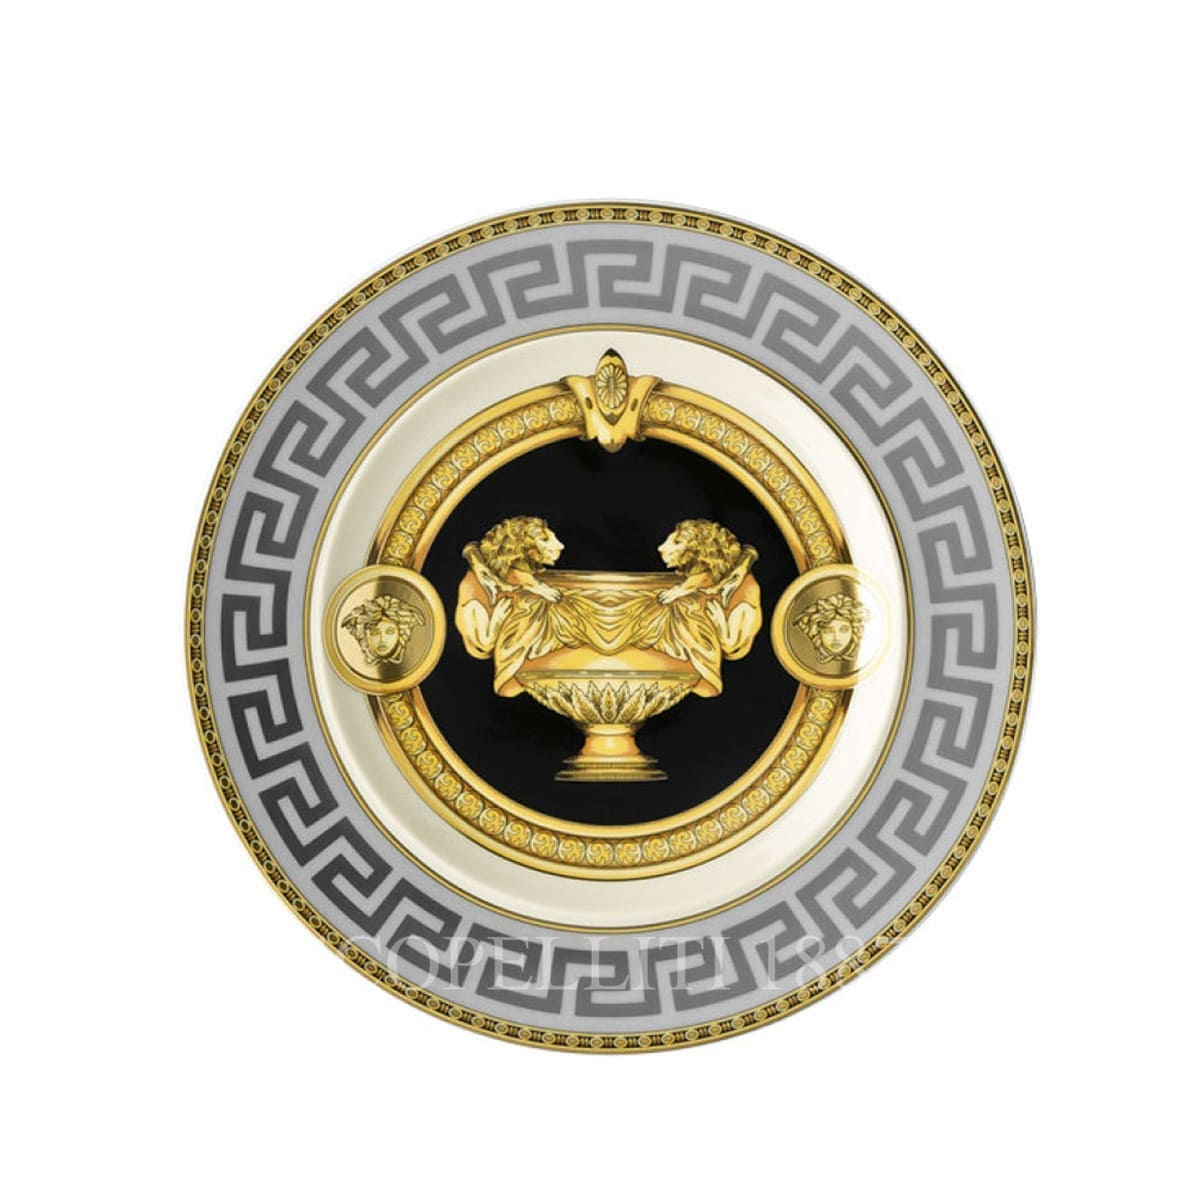 Versace Prestige Gala 2 small Plate 18 cm by Rosenthal